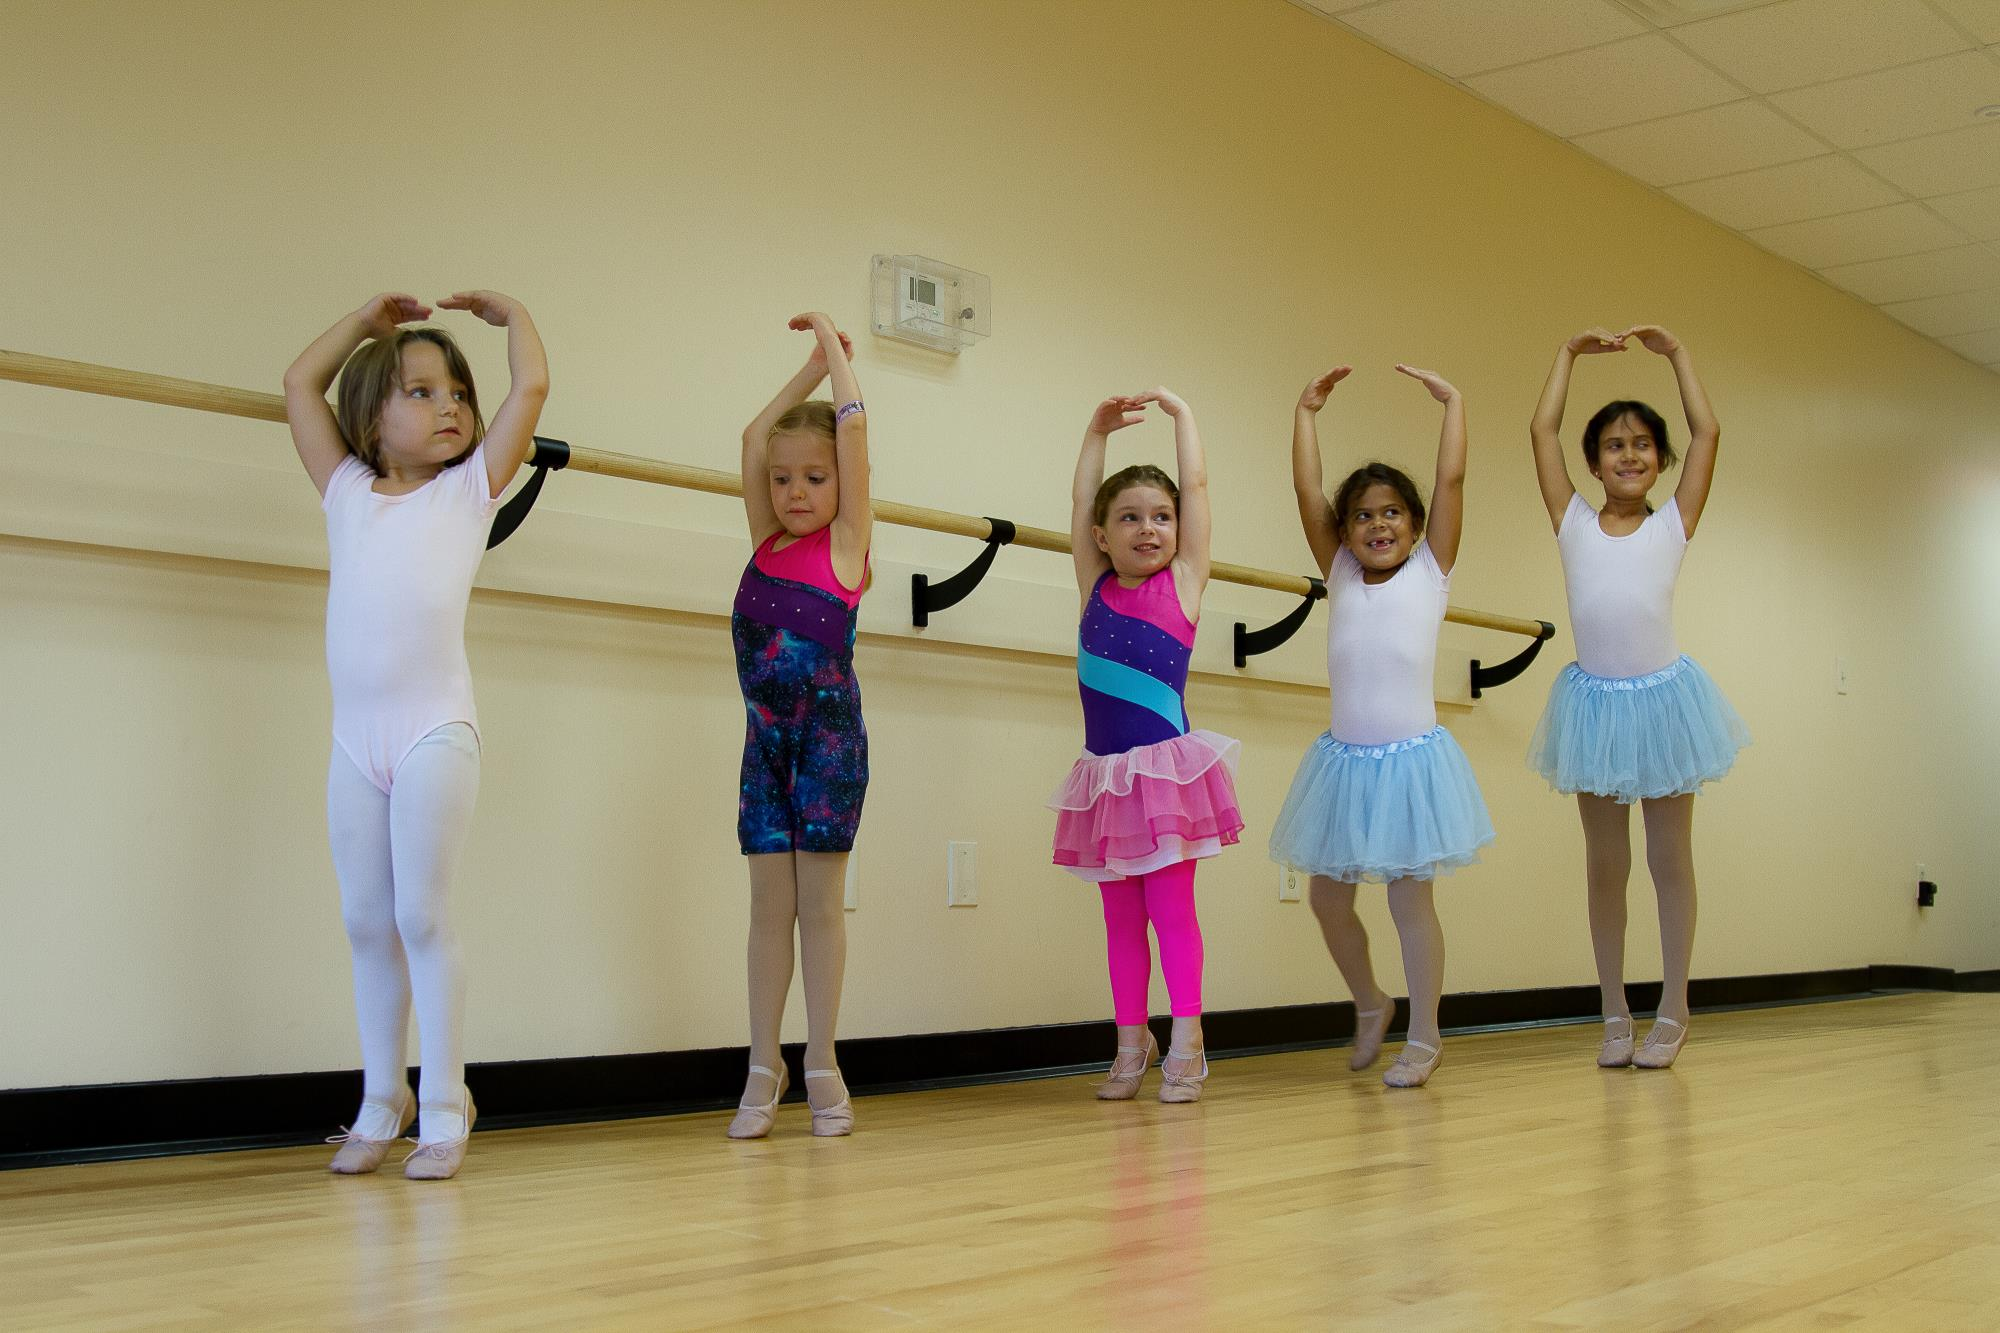 Five girls lined up against wall doing ballet